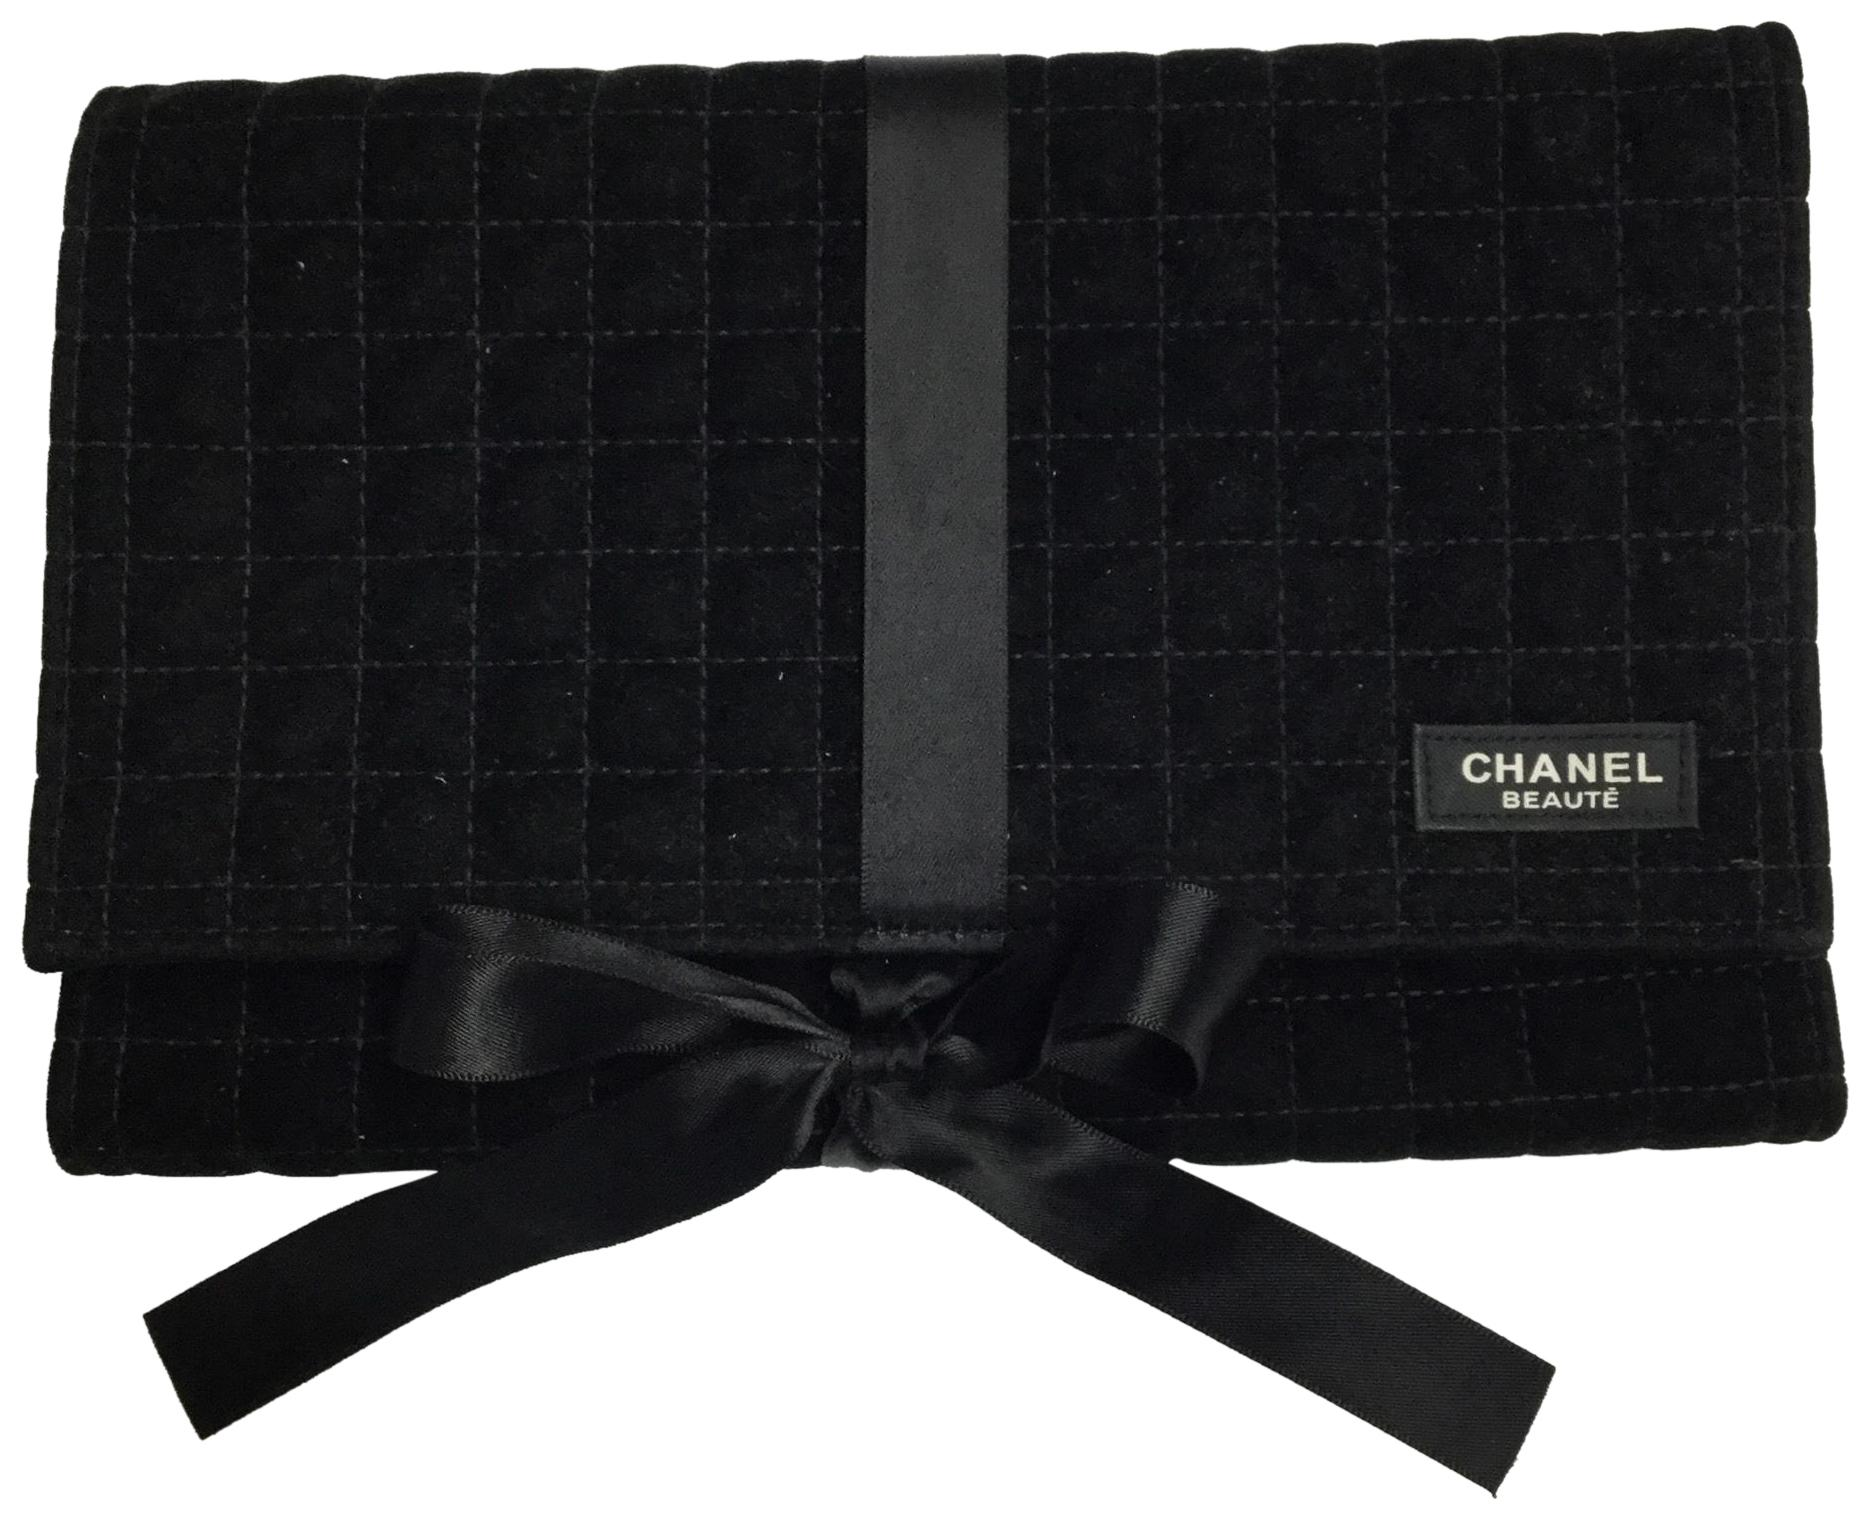 chanel beaute black quilted velvet makeup cosmetic bag